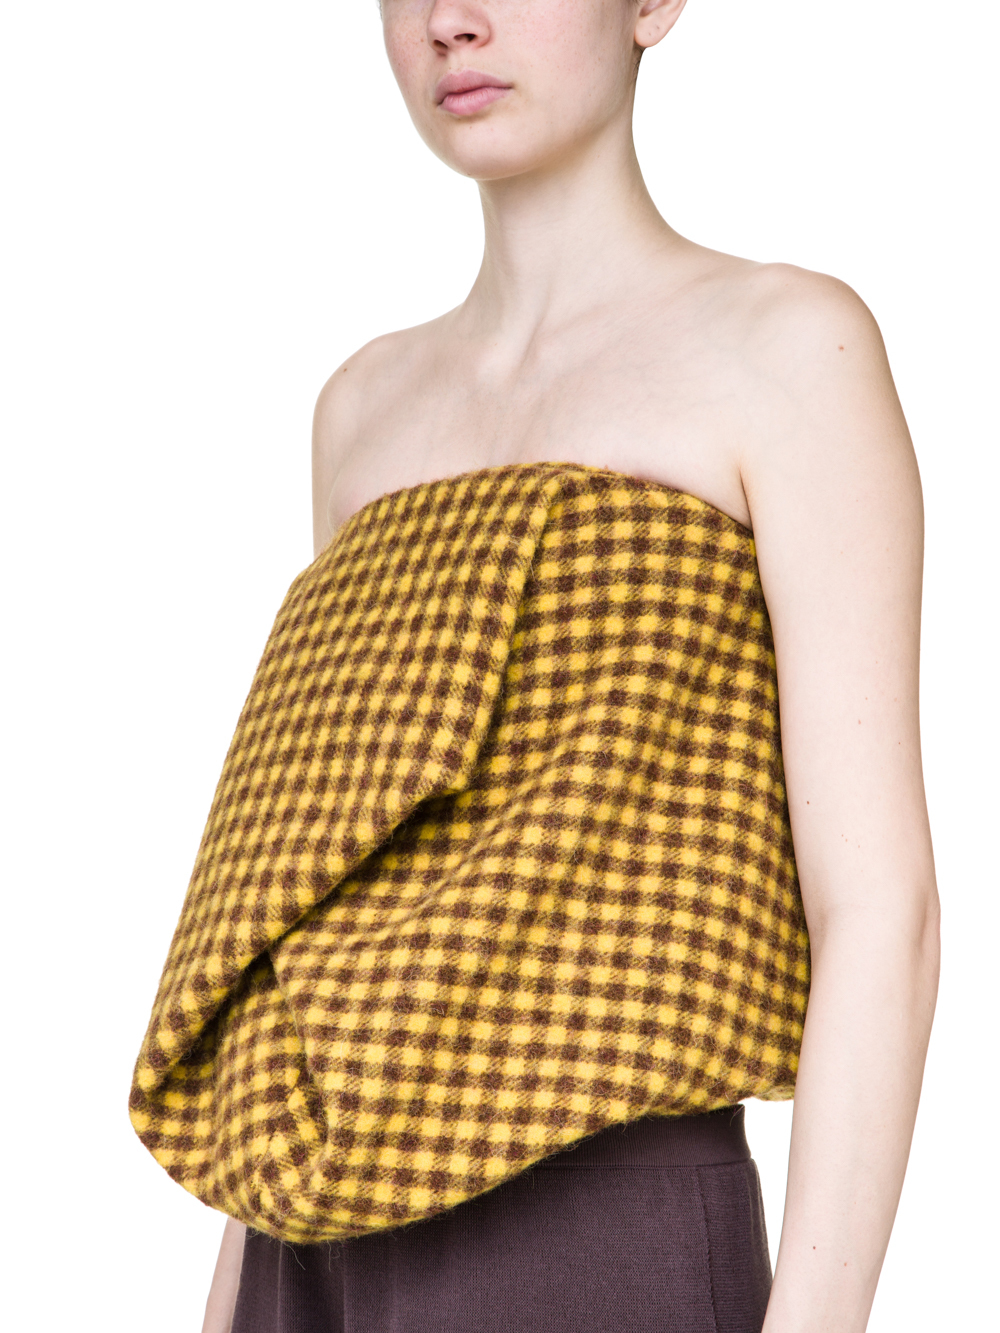 RICK OWENS OFF-THE-RUNWAY SCRUNCH TOP IN RAISIN PURPLE AND YELLOW MINI PLAID